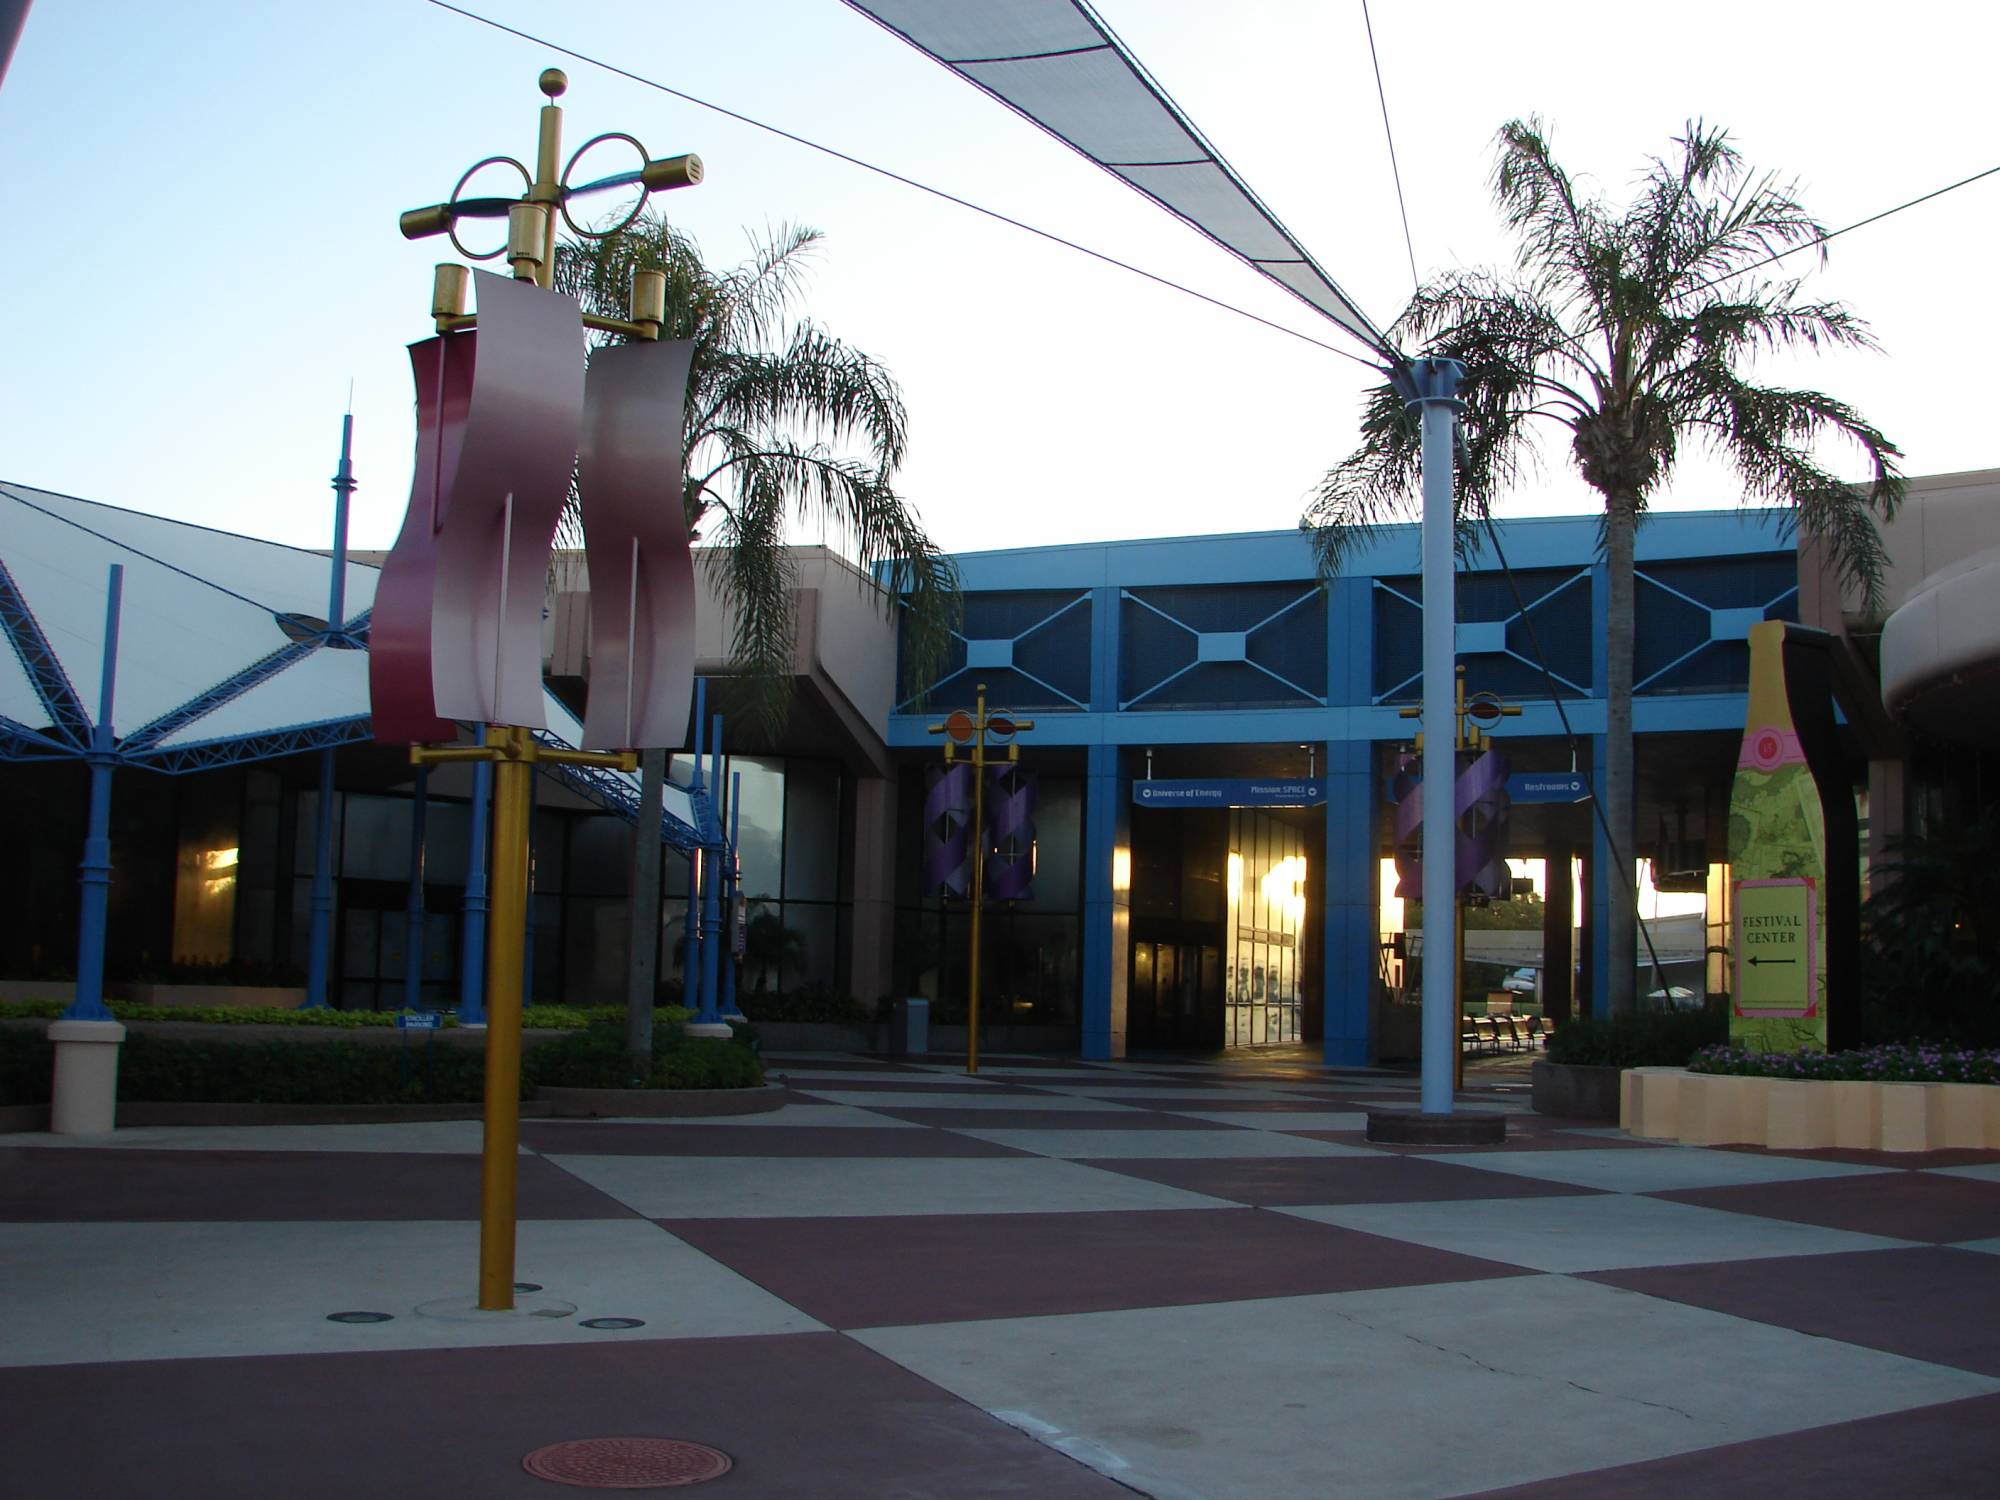 A quiet morning at Innoventions